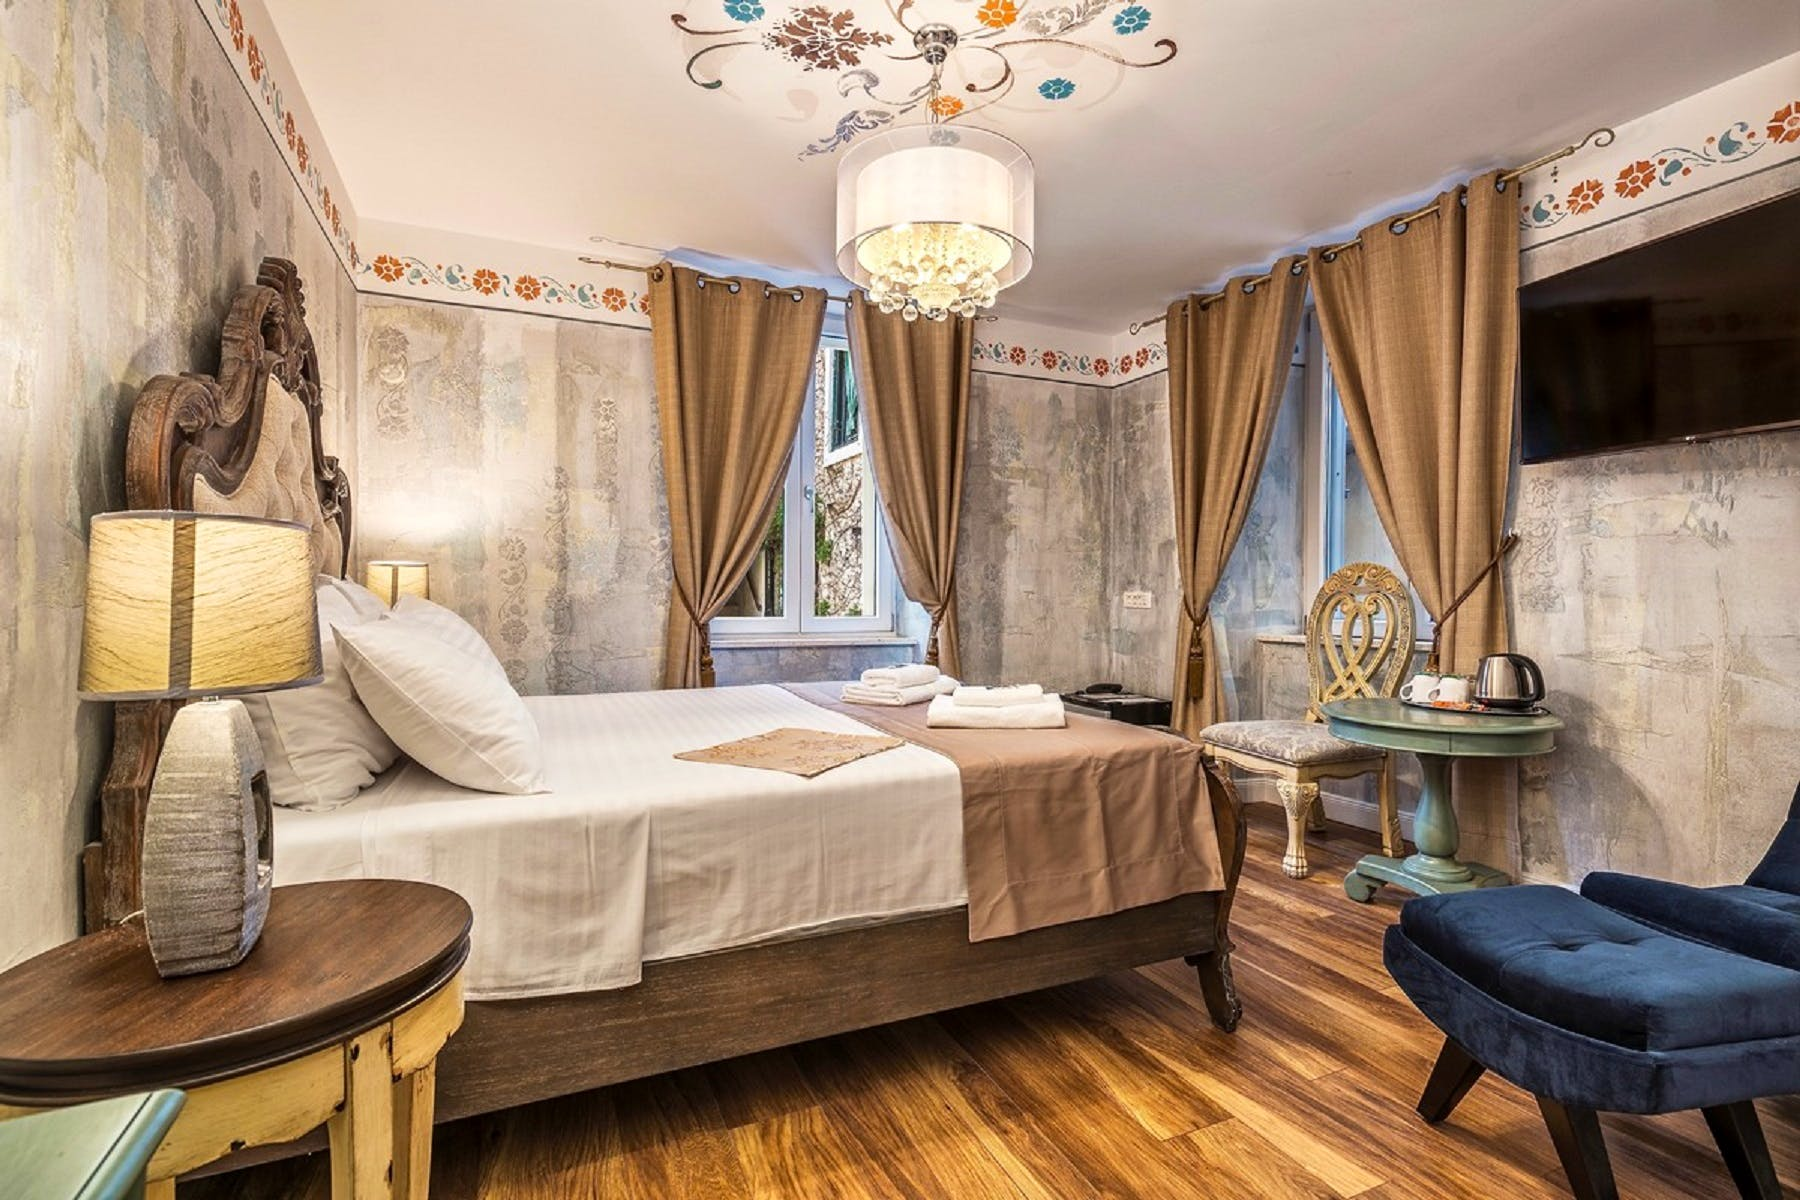 Marvelous chandeliers can be found in bedrooms as well